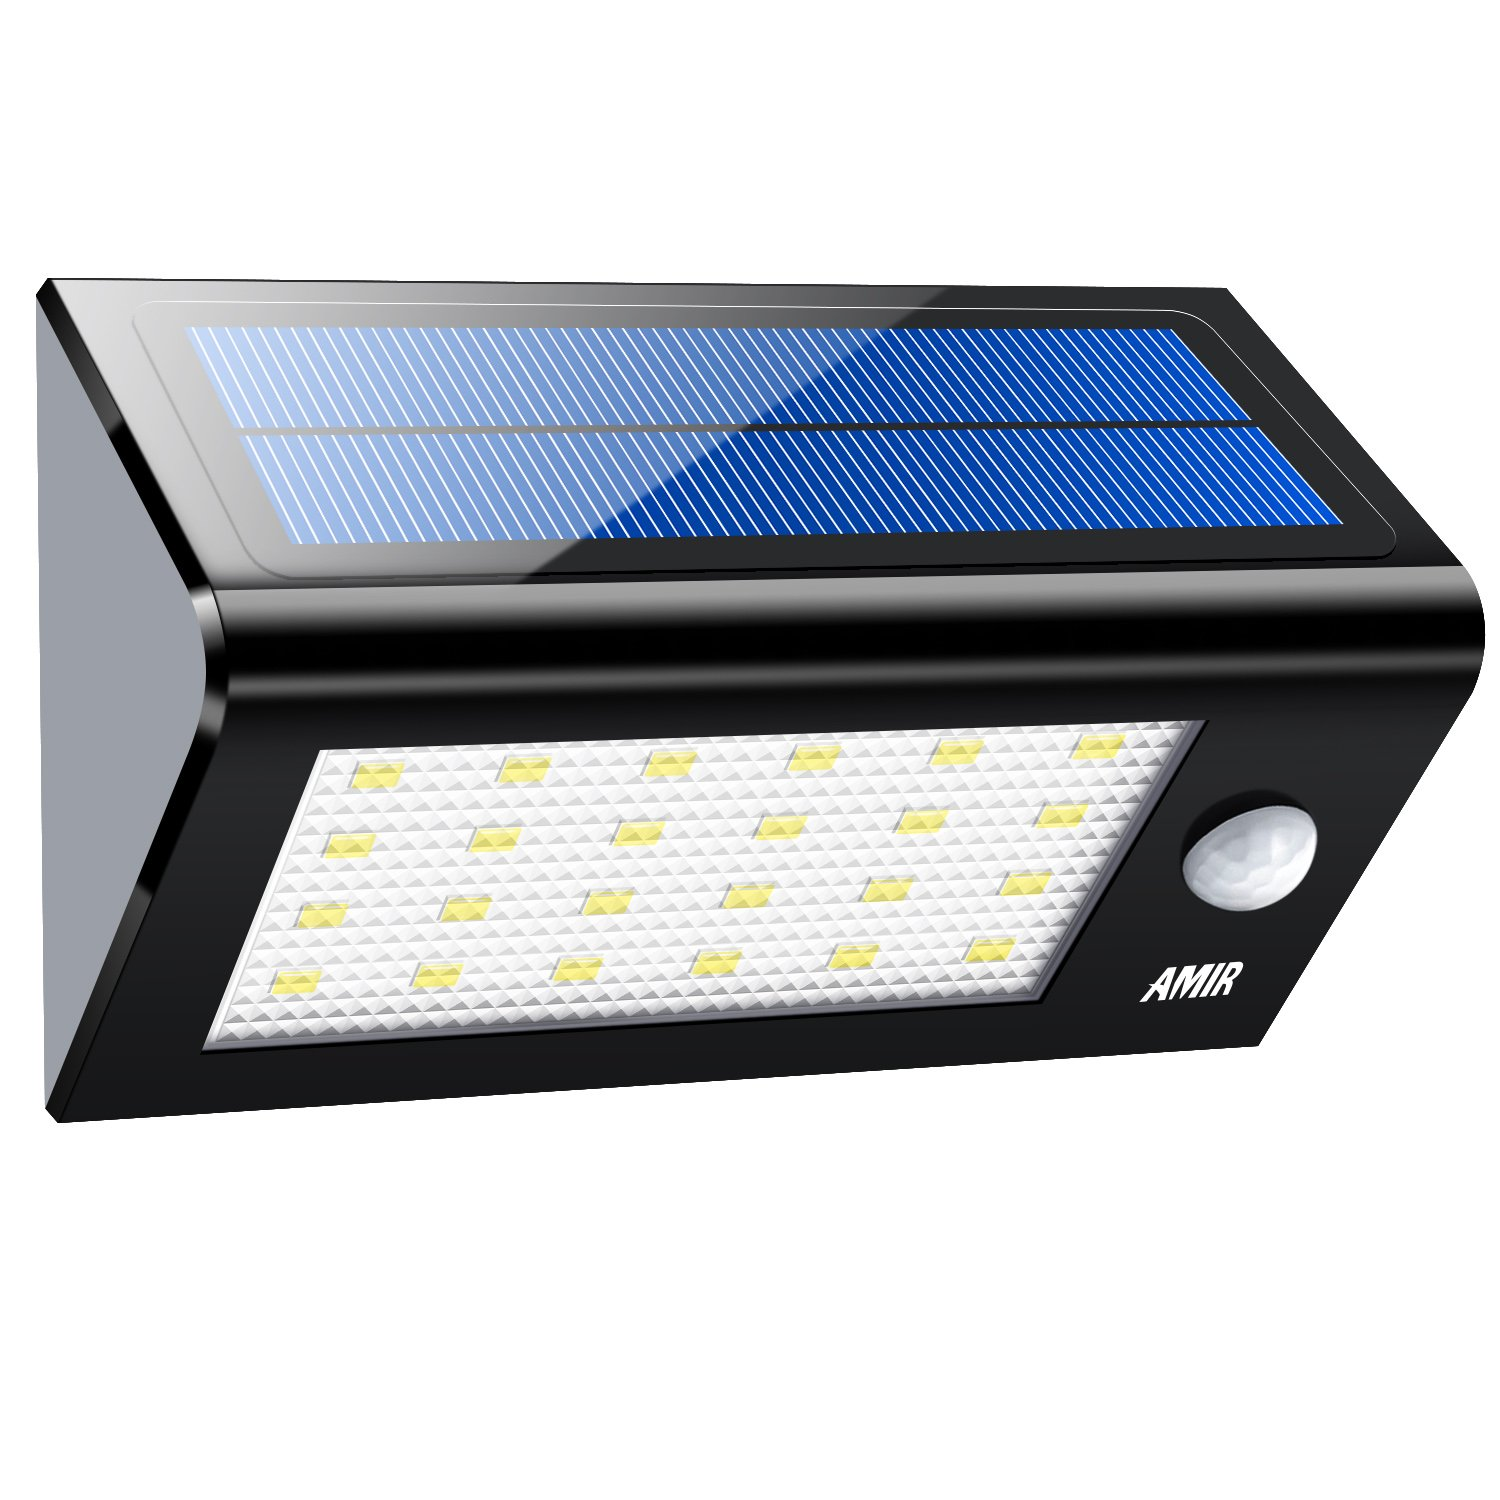 Best Rated In Outdoor Step Lights Helpful Customer Reviews Wiring Security Back Deck Amir Solar 24 Led Motion Sensor Wall 4 Modes Wireless Garden